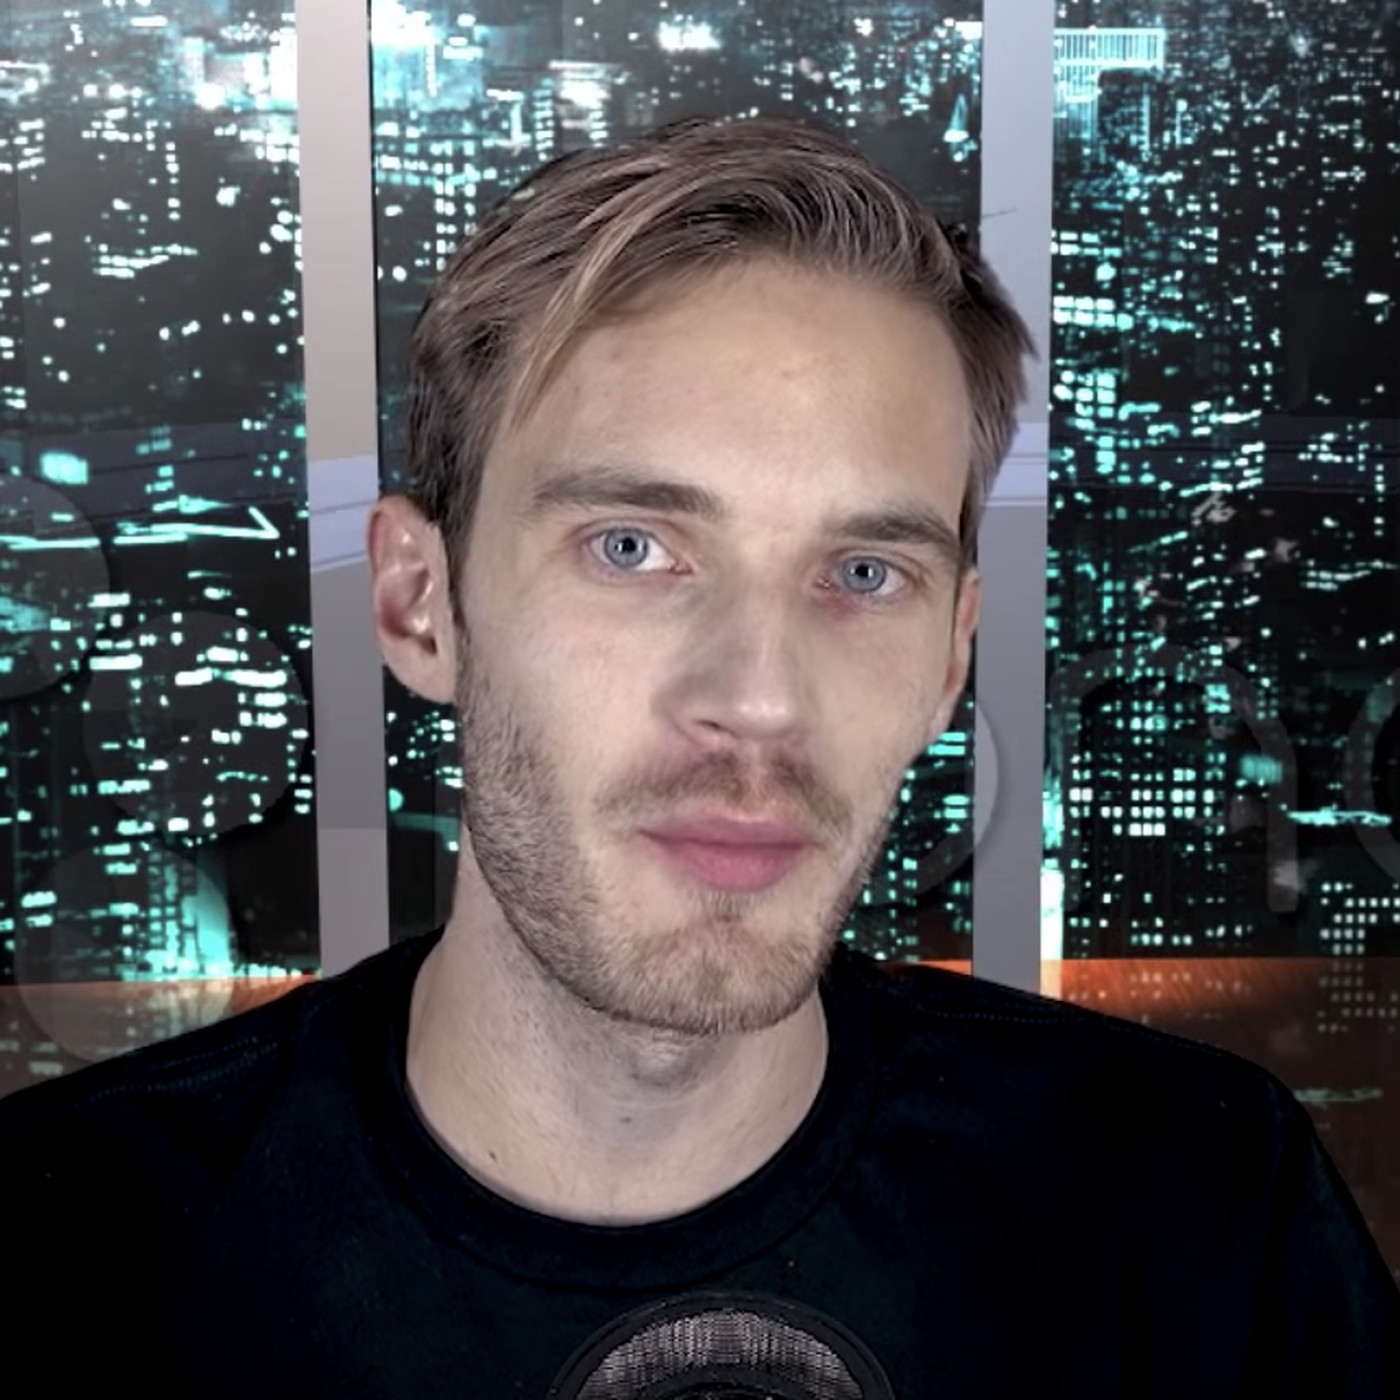 PewDiePie gives shout out to hateful, anti-Semitic YouTube